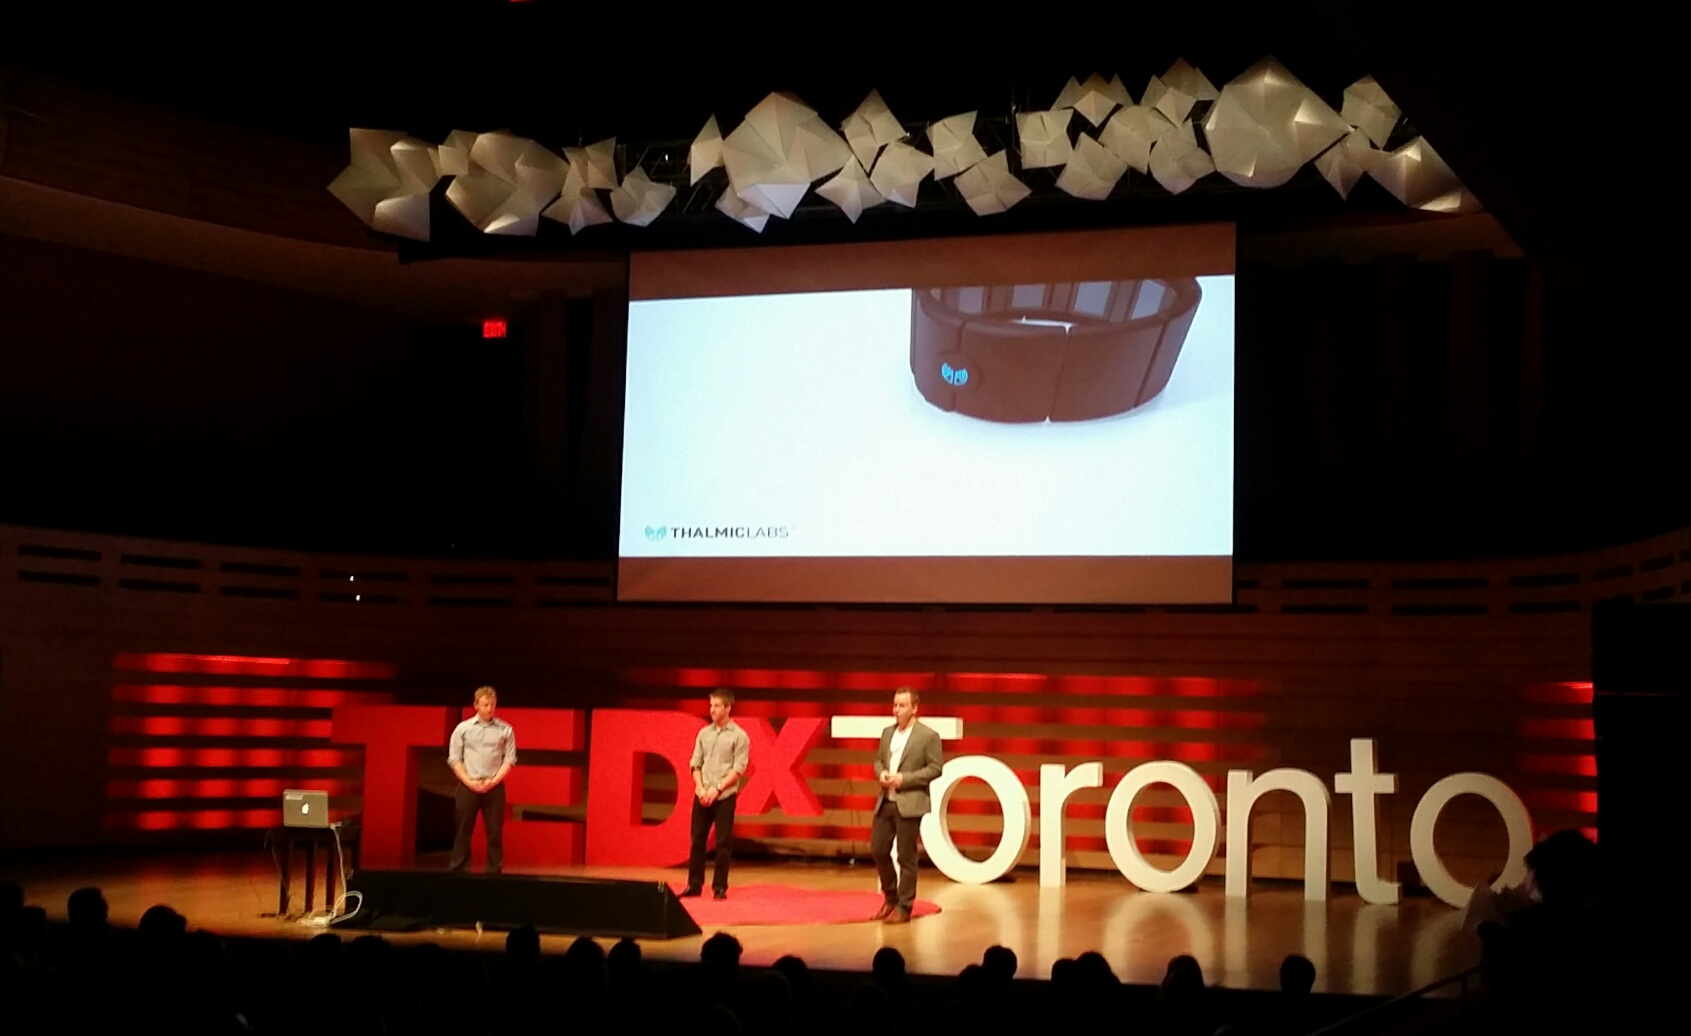 From TEDxToronto to the trenches, a glimpse of technology's future